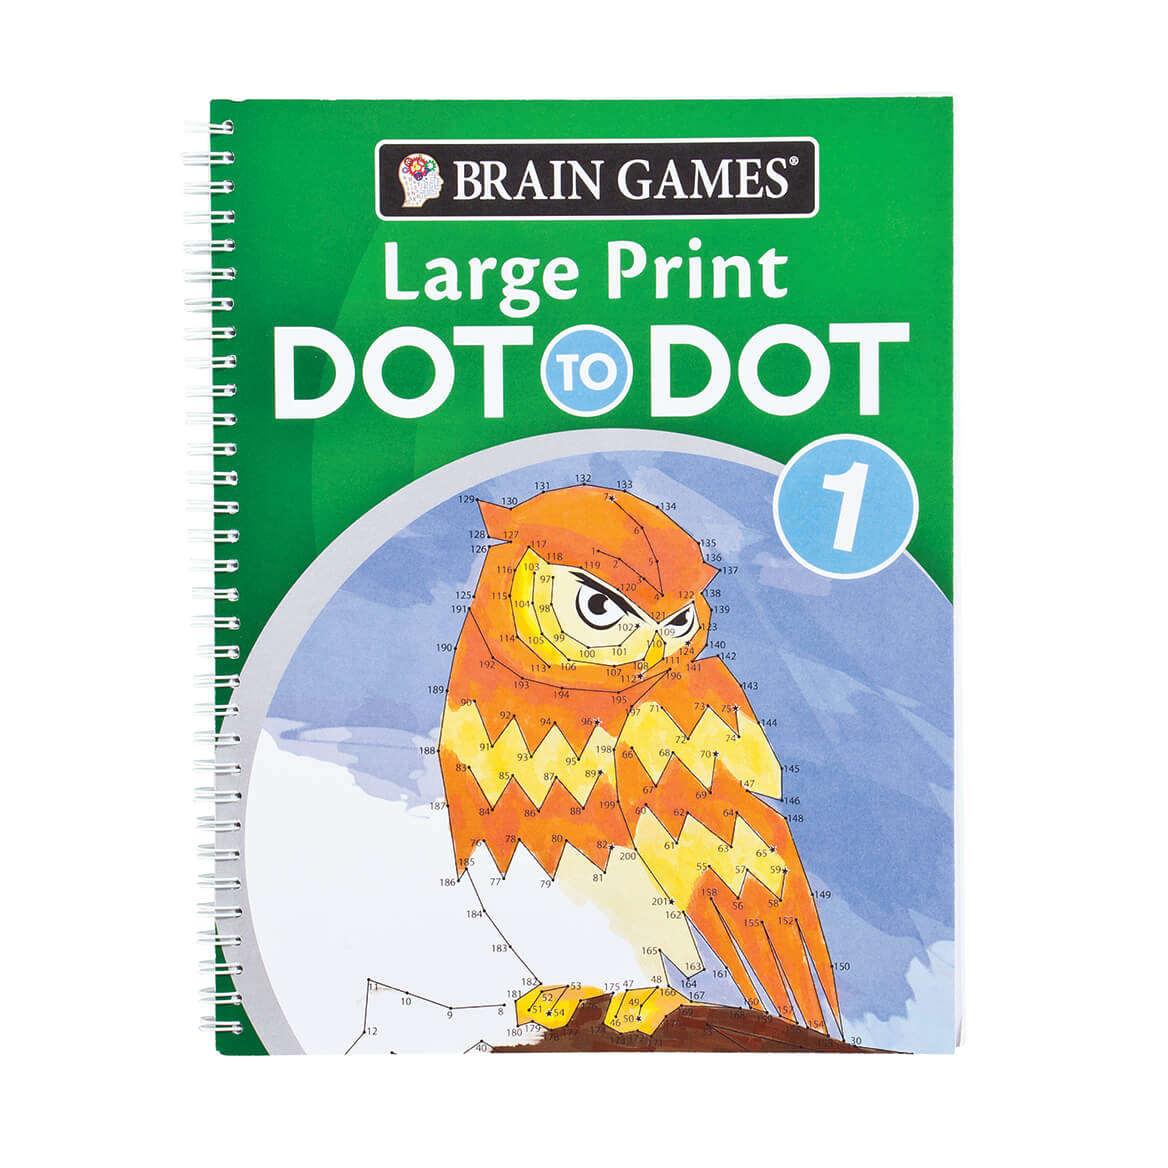 Brain Games Large Print Dot to Dot Version 1 Owl Cover Designed to work your brain without straining your eyes, these Brain Games Large Print Dot to Dot puzzles are printed in LARGE, easy-to-read type! Helping enhance focus and concentration while you relax and enjoy without squinting or struggling to see, the classic dot-to-dot book features a variety of visual themes. Version 1 includes animals, famous people, landscapes and everyday objects; Version 2 features buildings, action scenes, food and famous people. Spiral binding keeps each Brain Games large print book flat during use, and single-sided perforated pages are perfect for tearing out and displaying your finished pictures. Each connect the dots book includes over 55 puzzles with answer key in back. Specify style: Version 1 or Version 2. Each softcover, 128 pages. 8 1/2  x 11 .